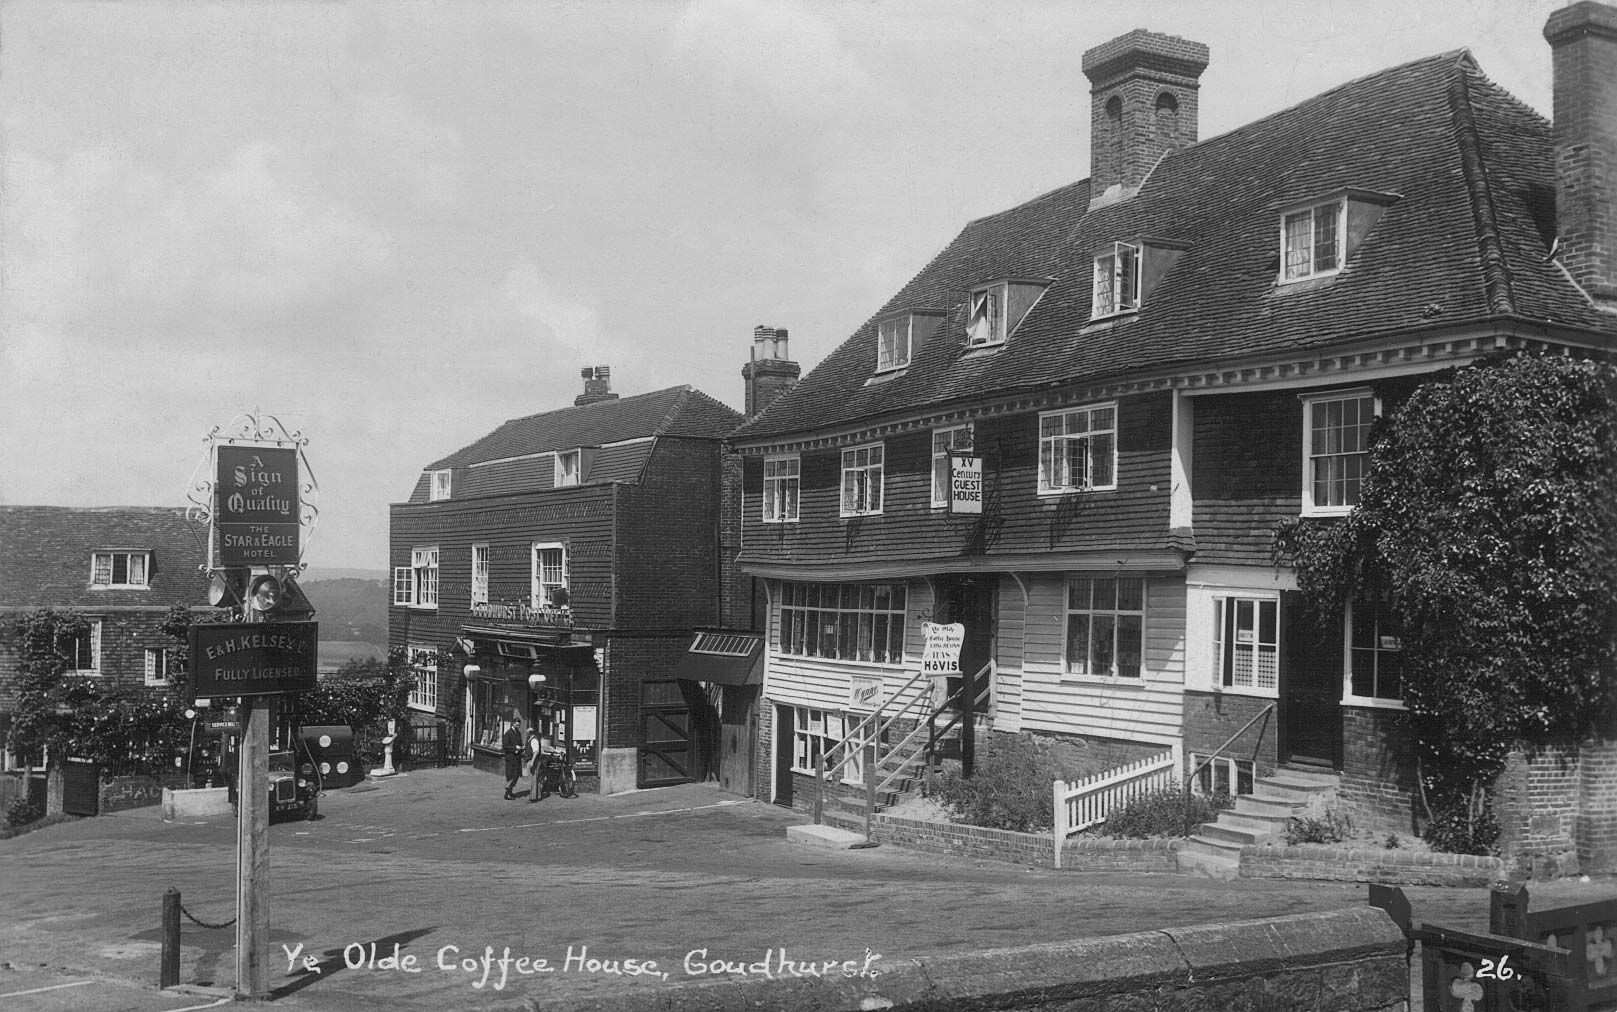 Old coffee shop, High Street, Goudhurst